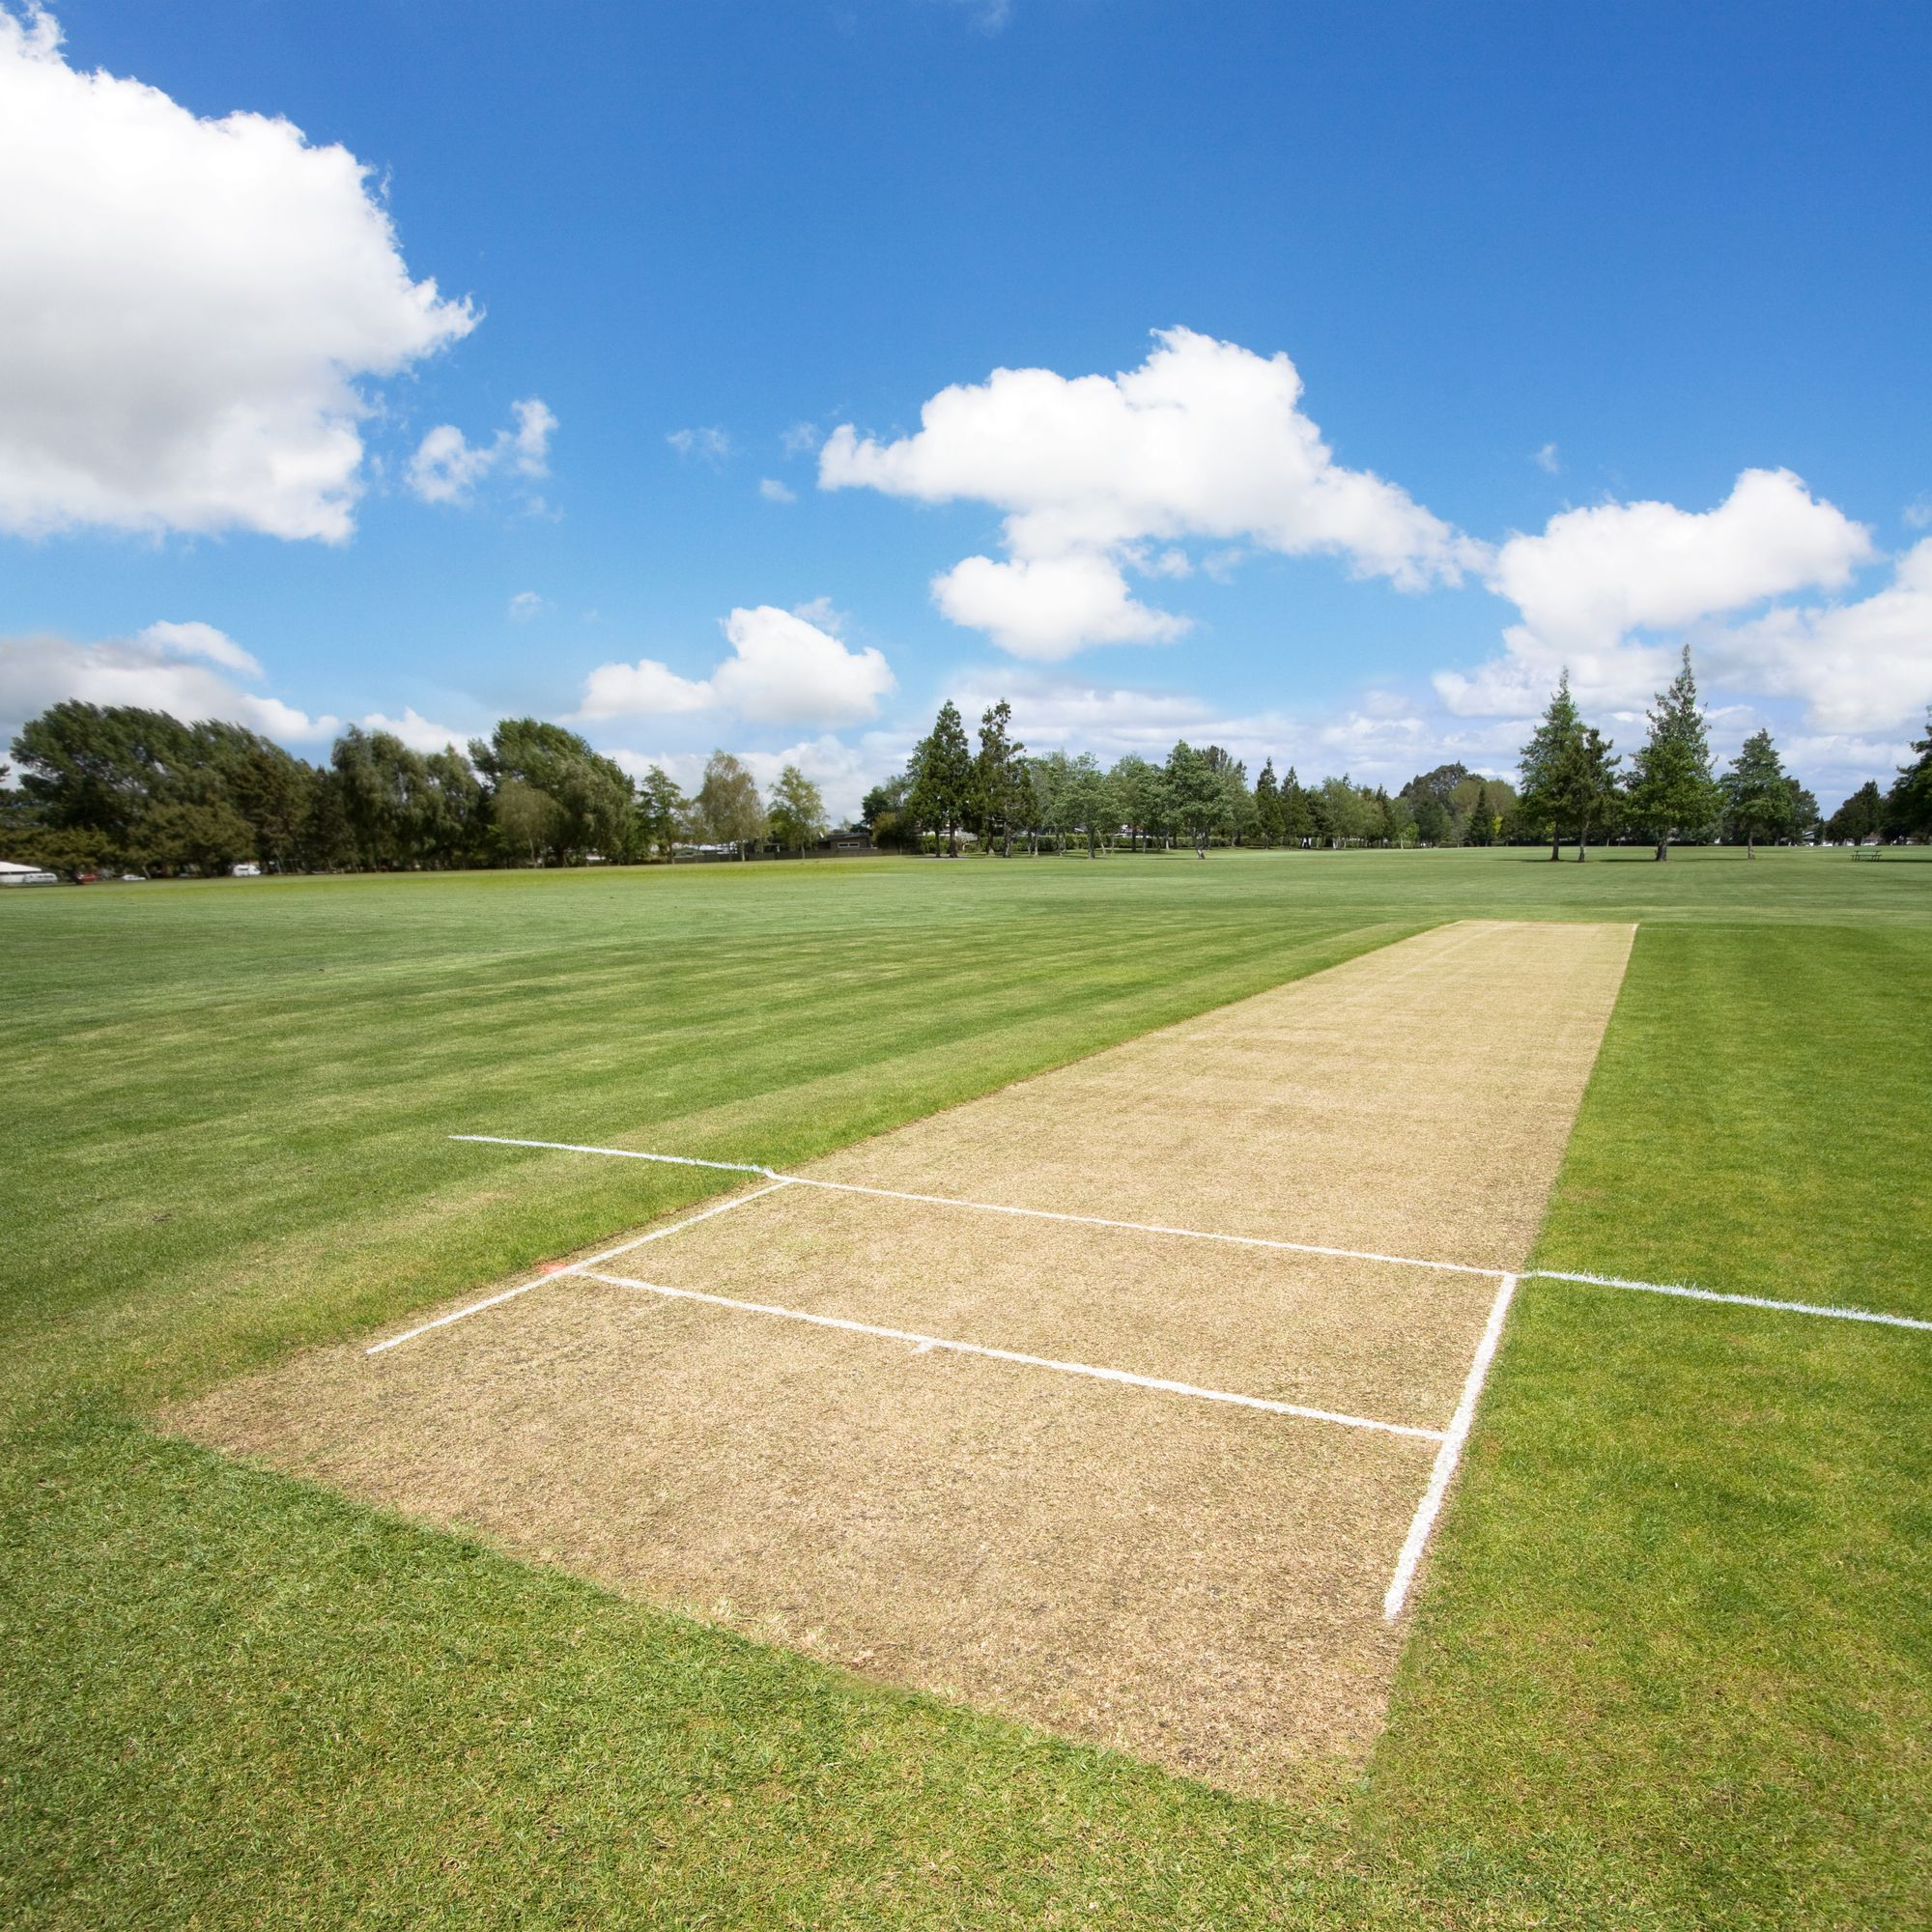 Cricket pitch in the sports park background with copy